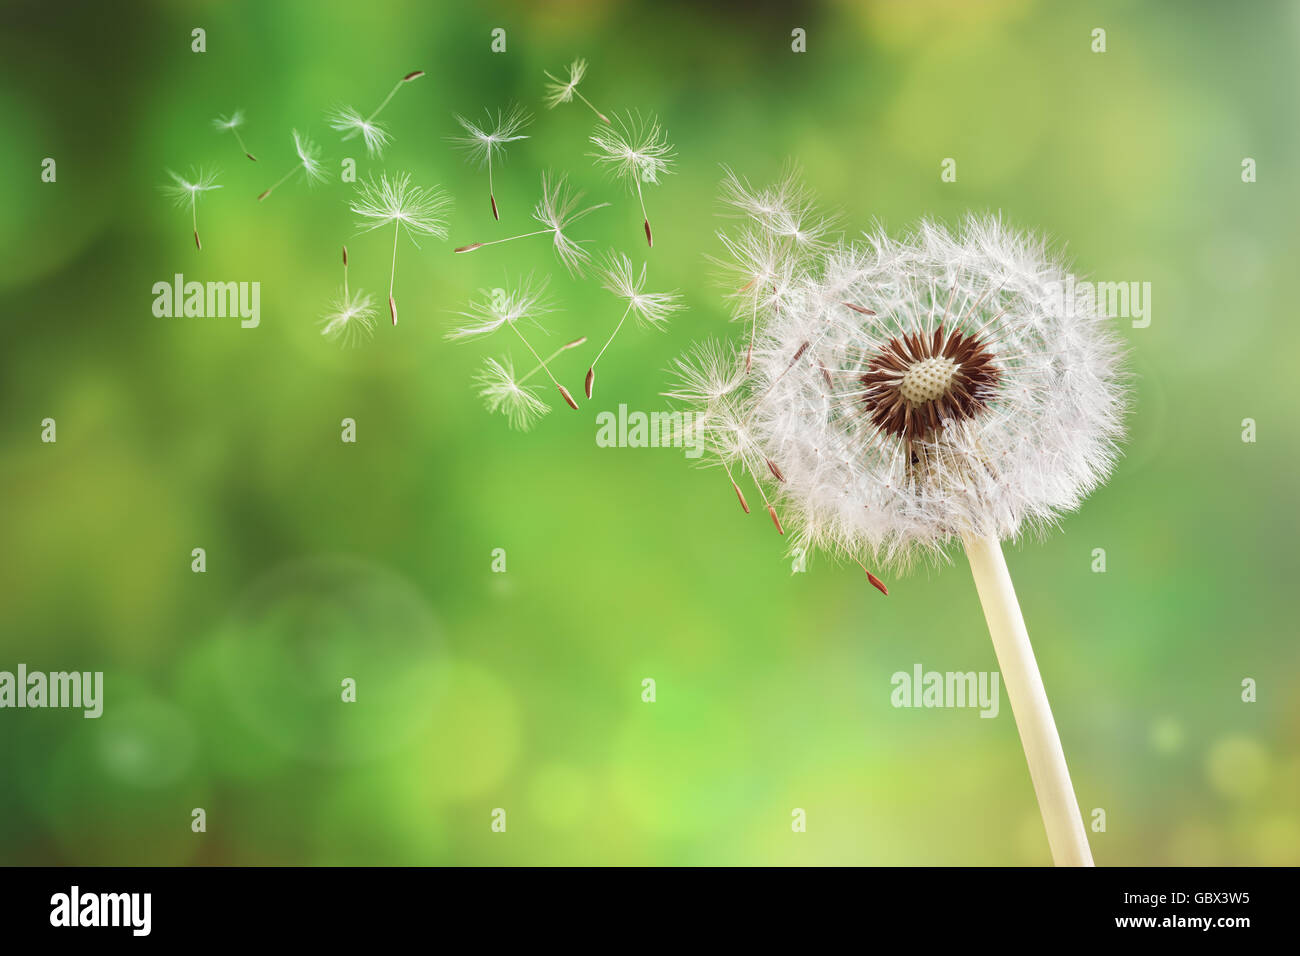 Dandelion seeds in the morning sunlight blowing away across a fresh green background - Stock Image